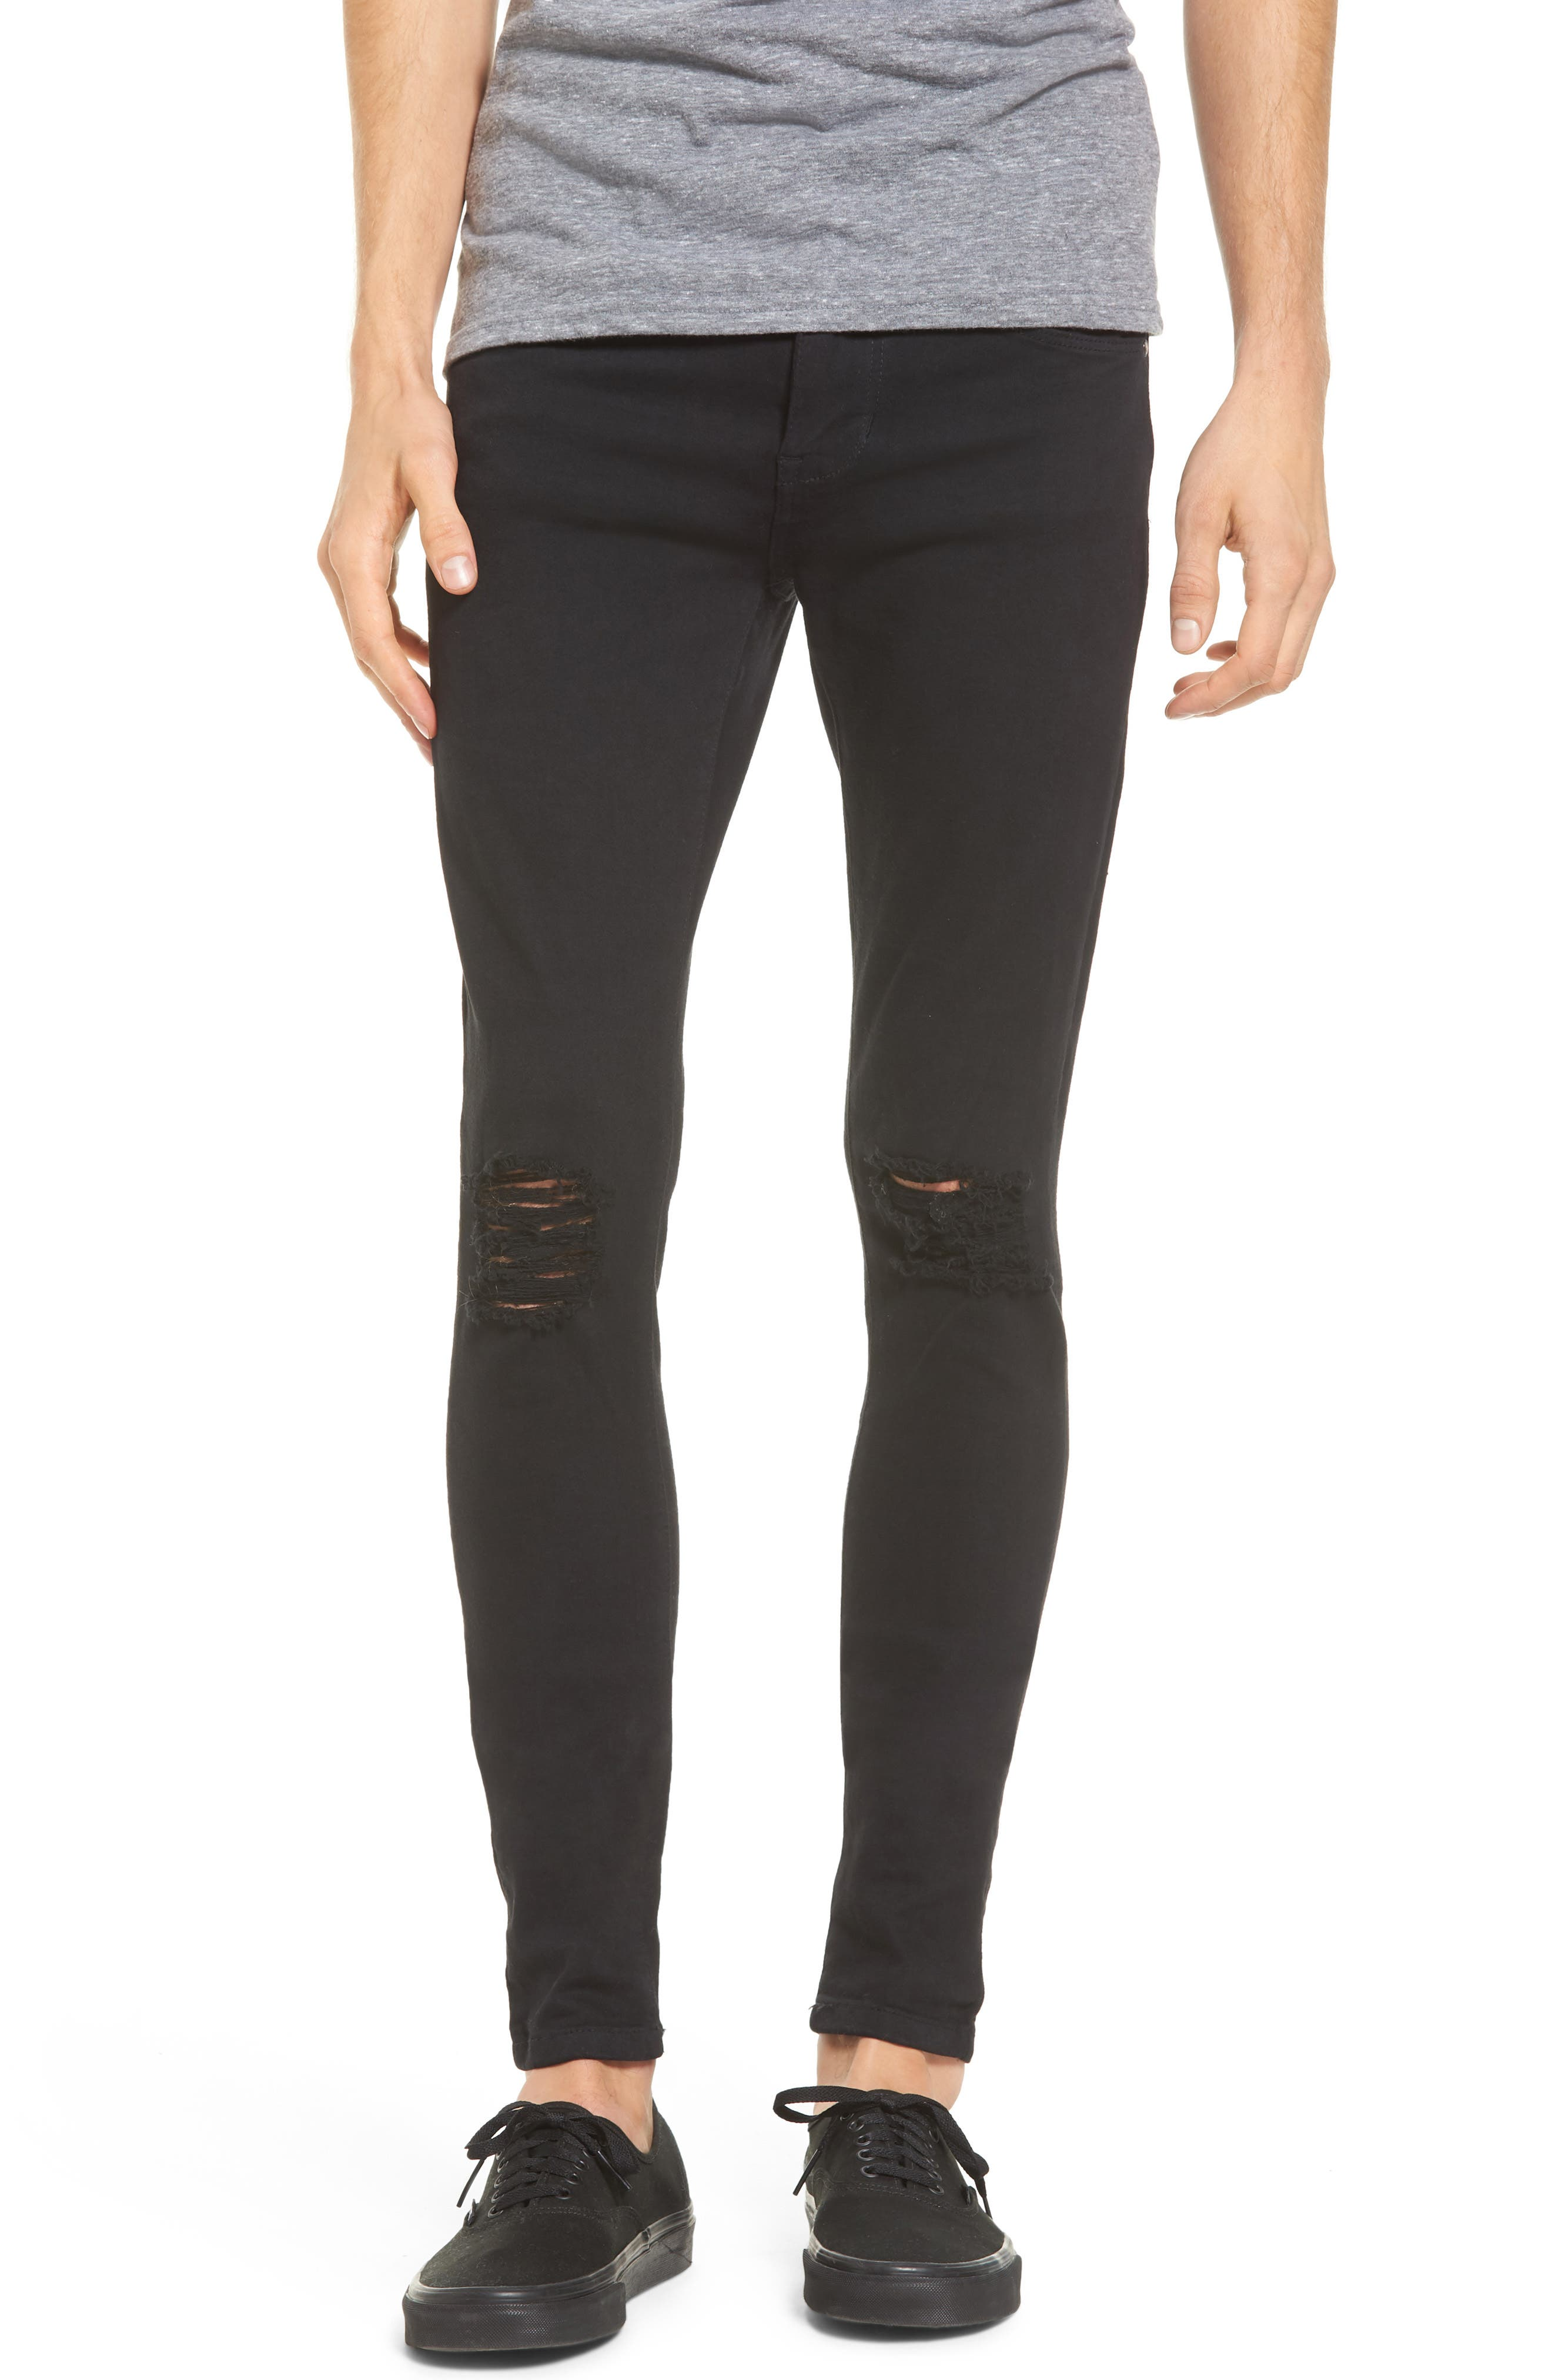 Dr. Denim Supply Co. Leroy Slim Fit Jeans (Black Ripped Knees)